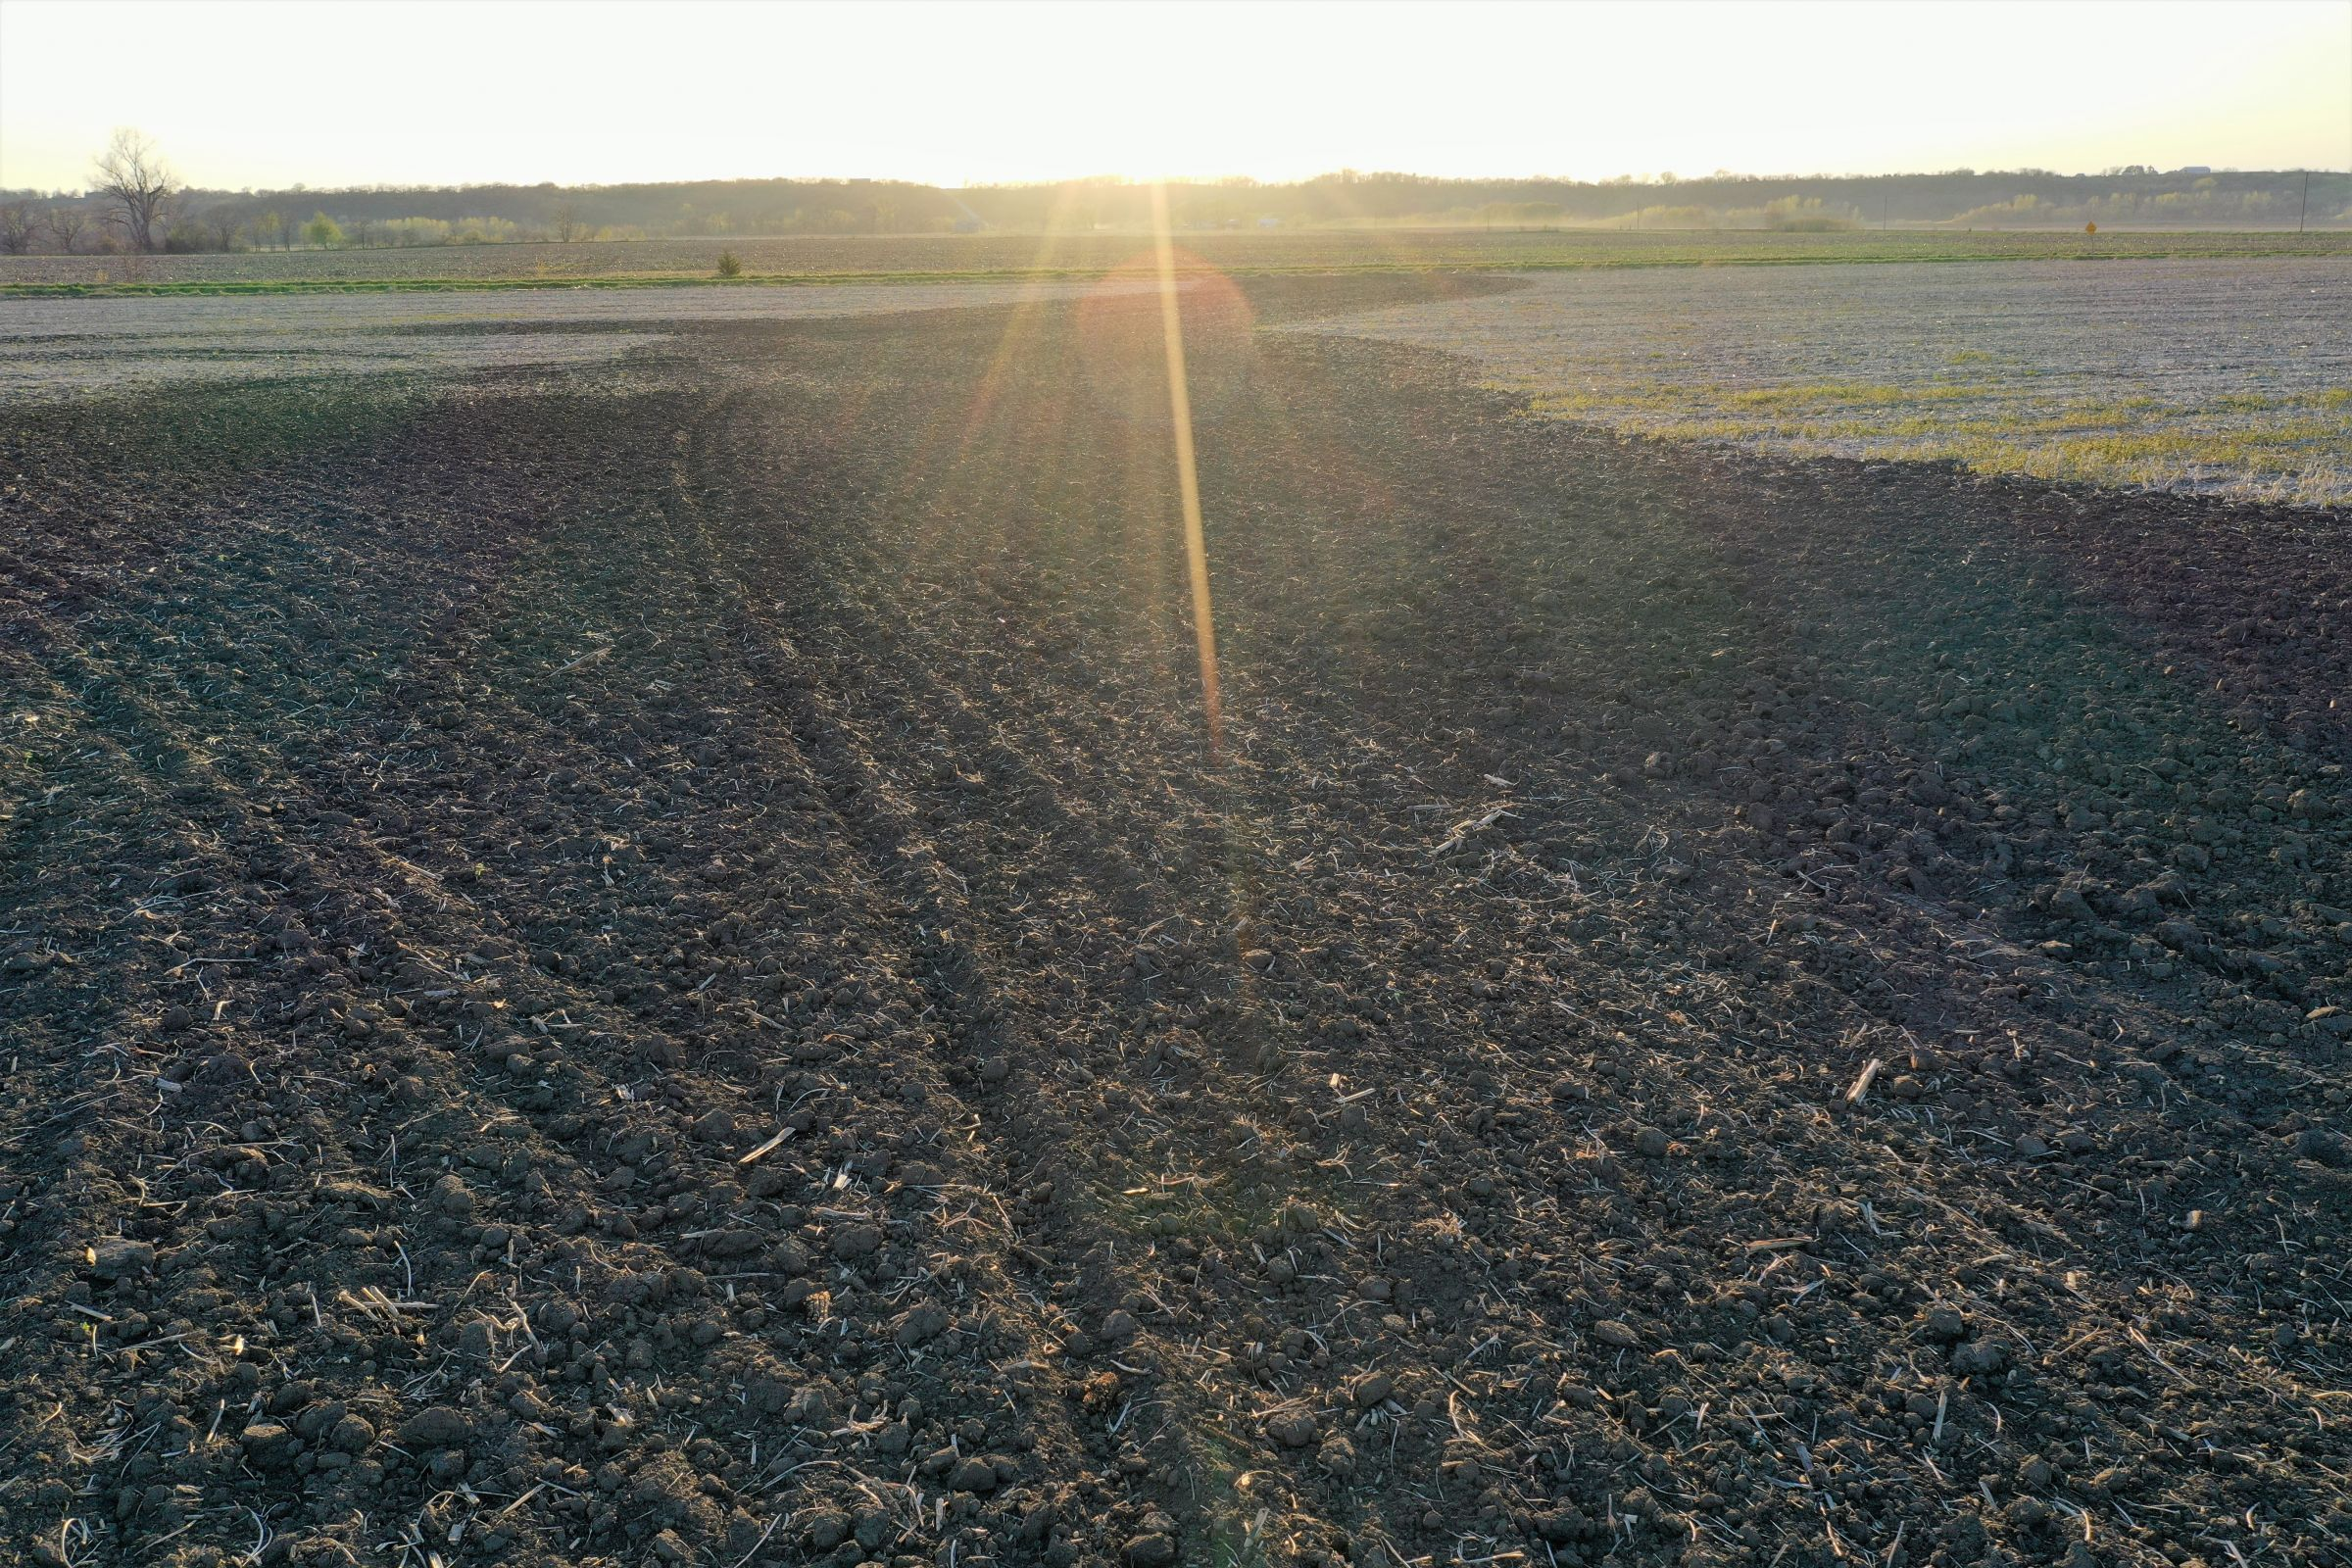 land-page-county-iowa-120-acres-listing-number-14982-5-2020-04-28-192955.jpg